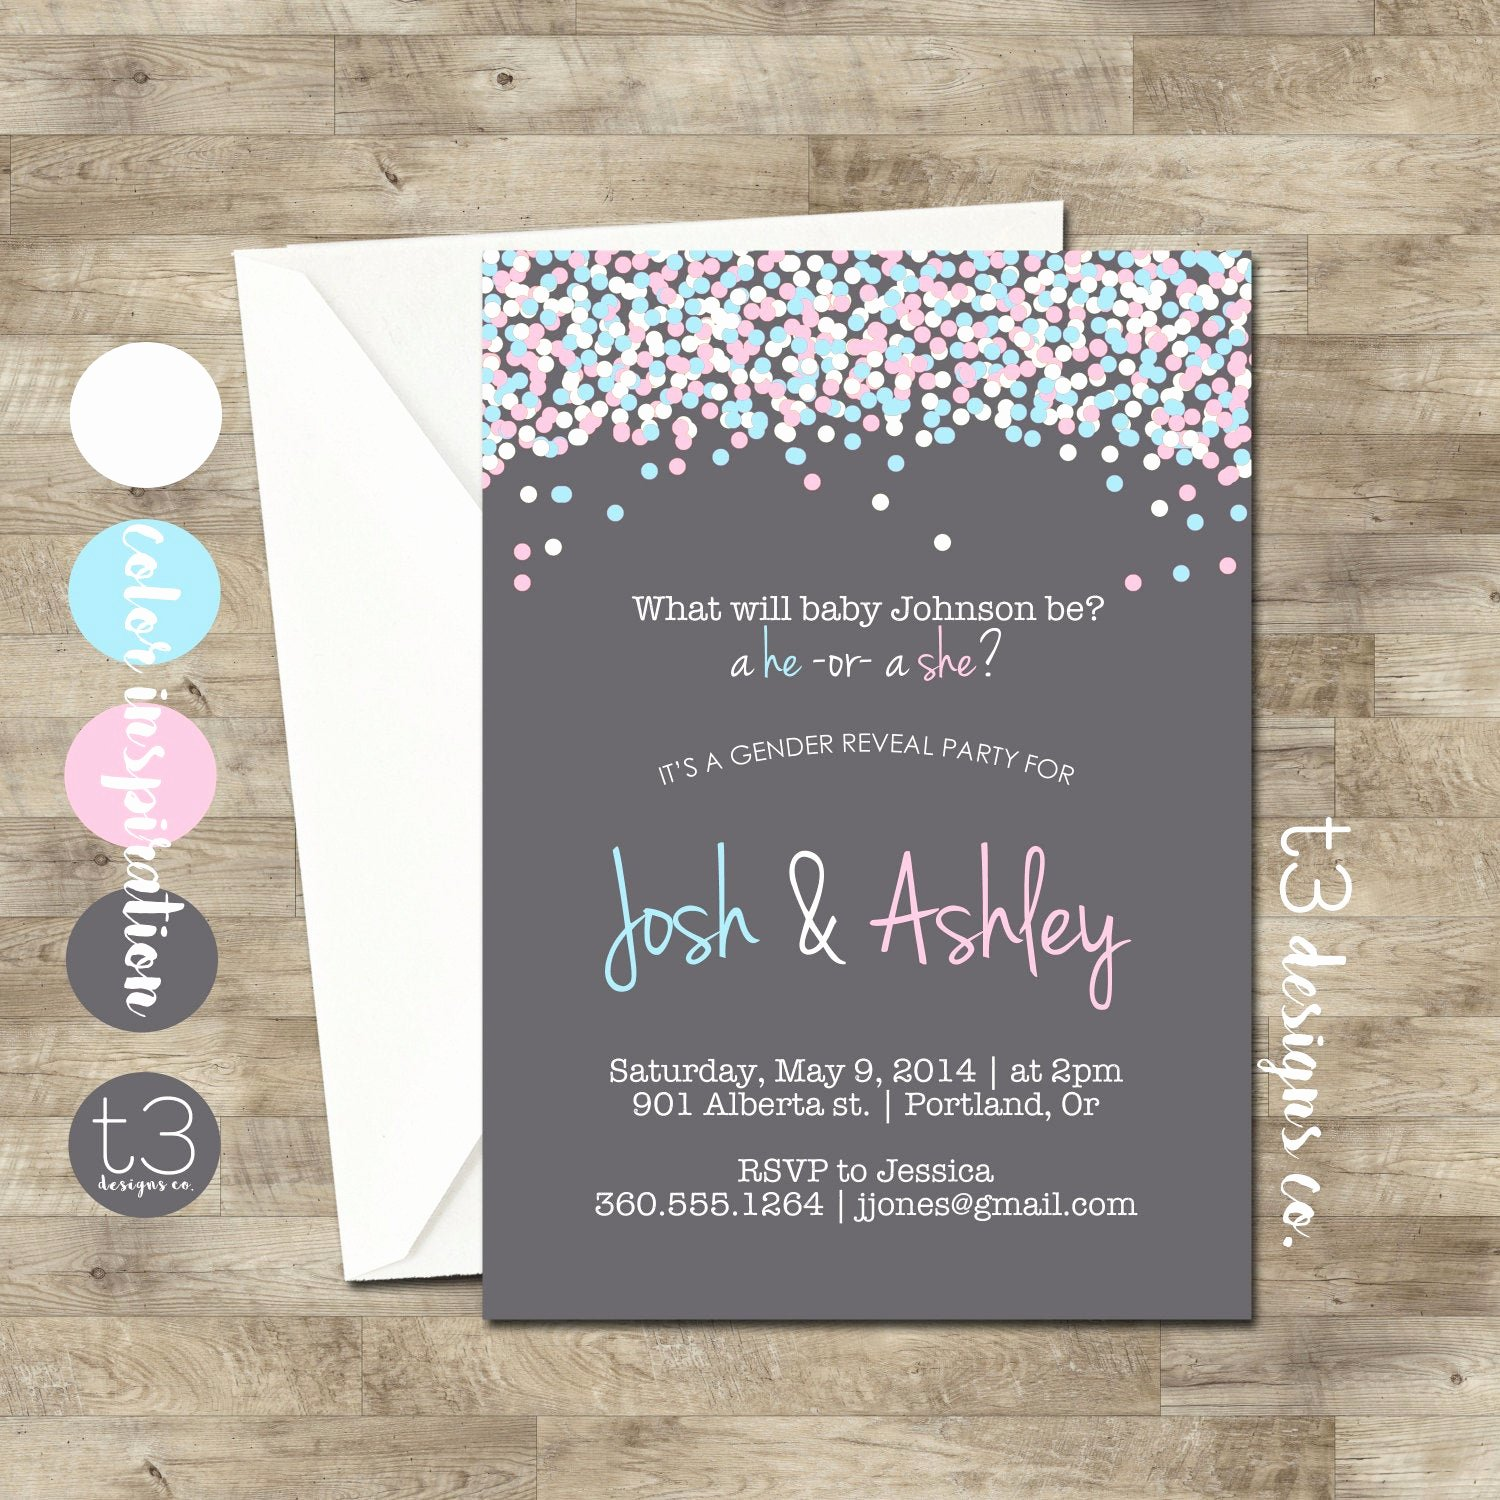 Gender Reveal Invitation Ideas Elegant Gender Reveal Invitation Confetti Gender Reveal Party